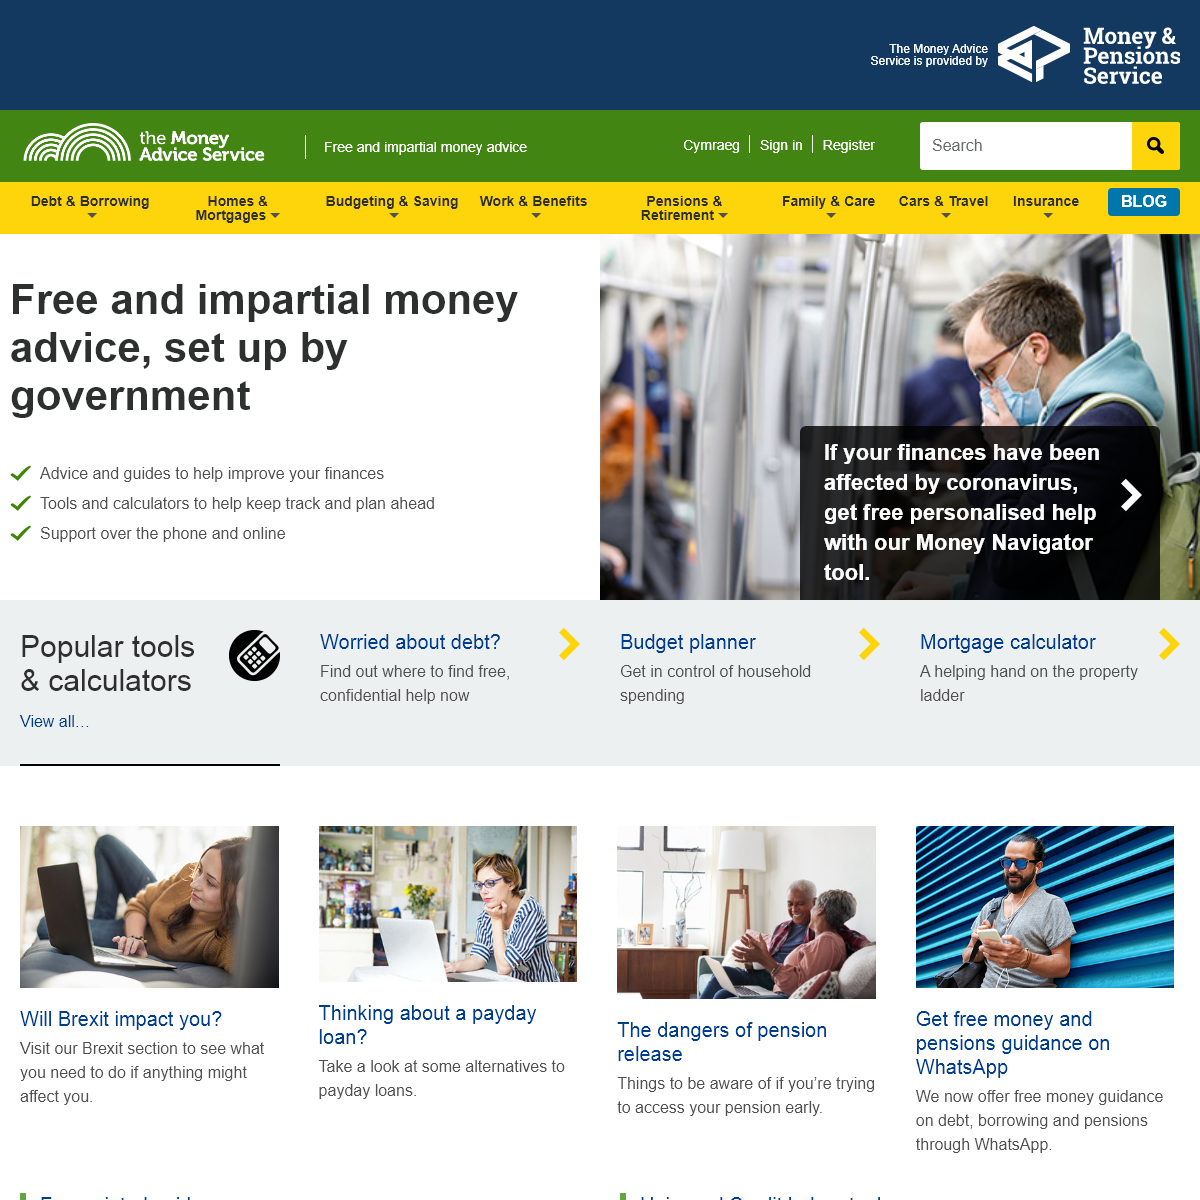 Free and impartial money advice, set up by government - Money Advice Service